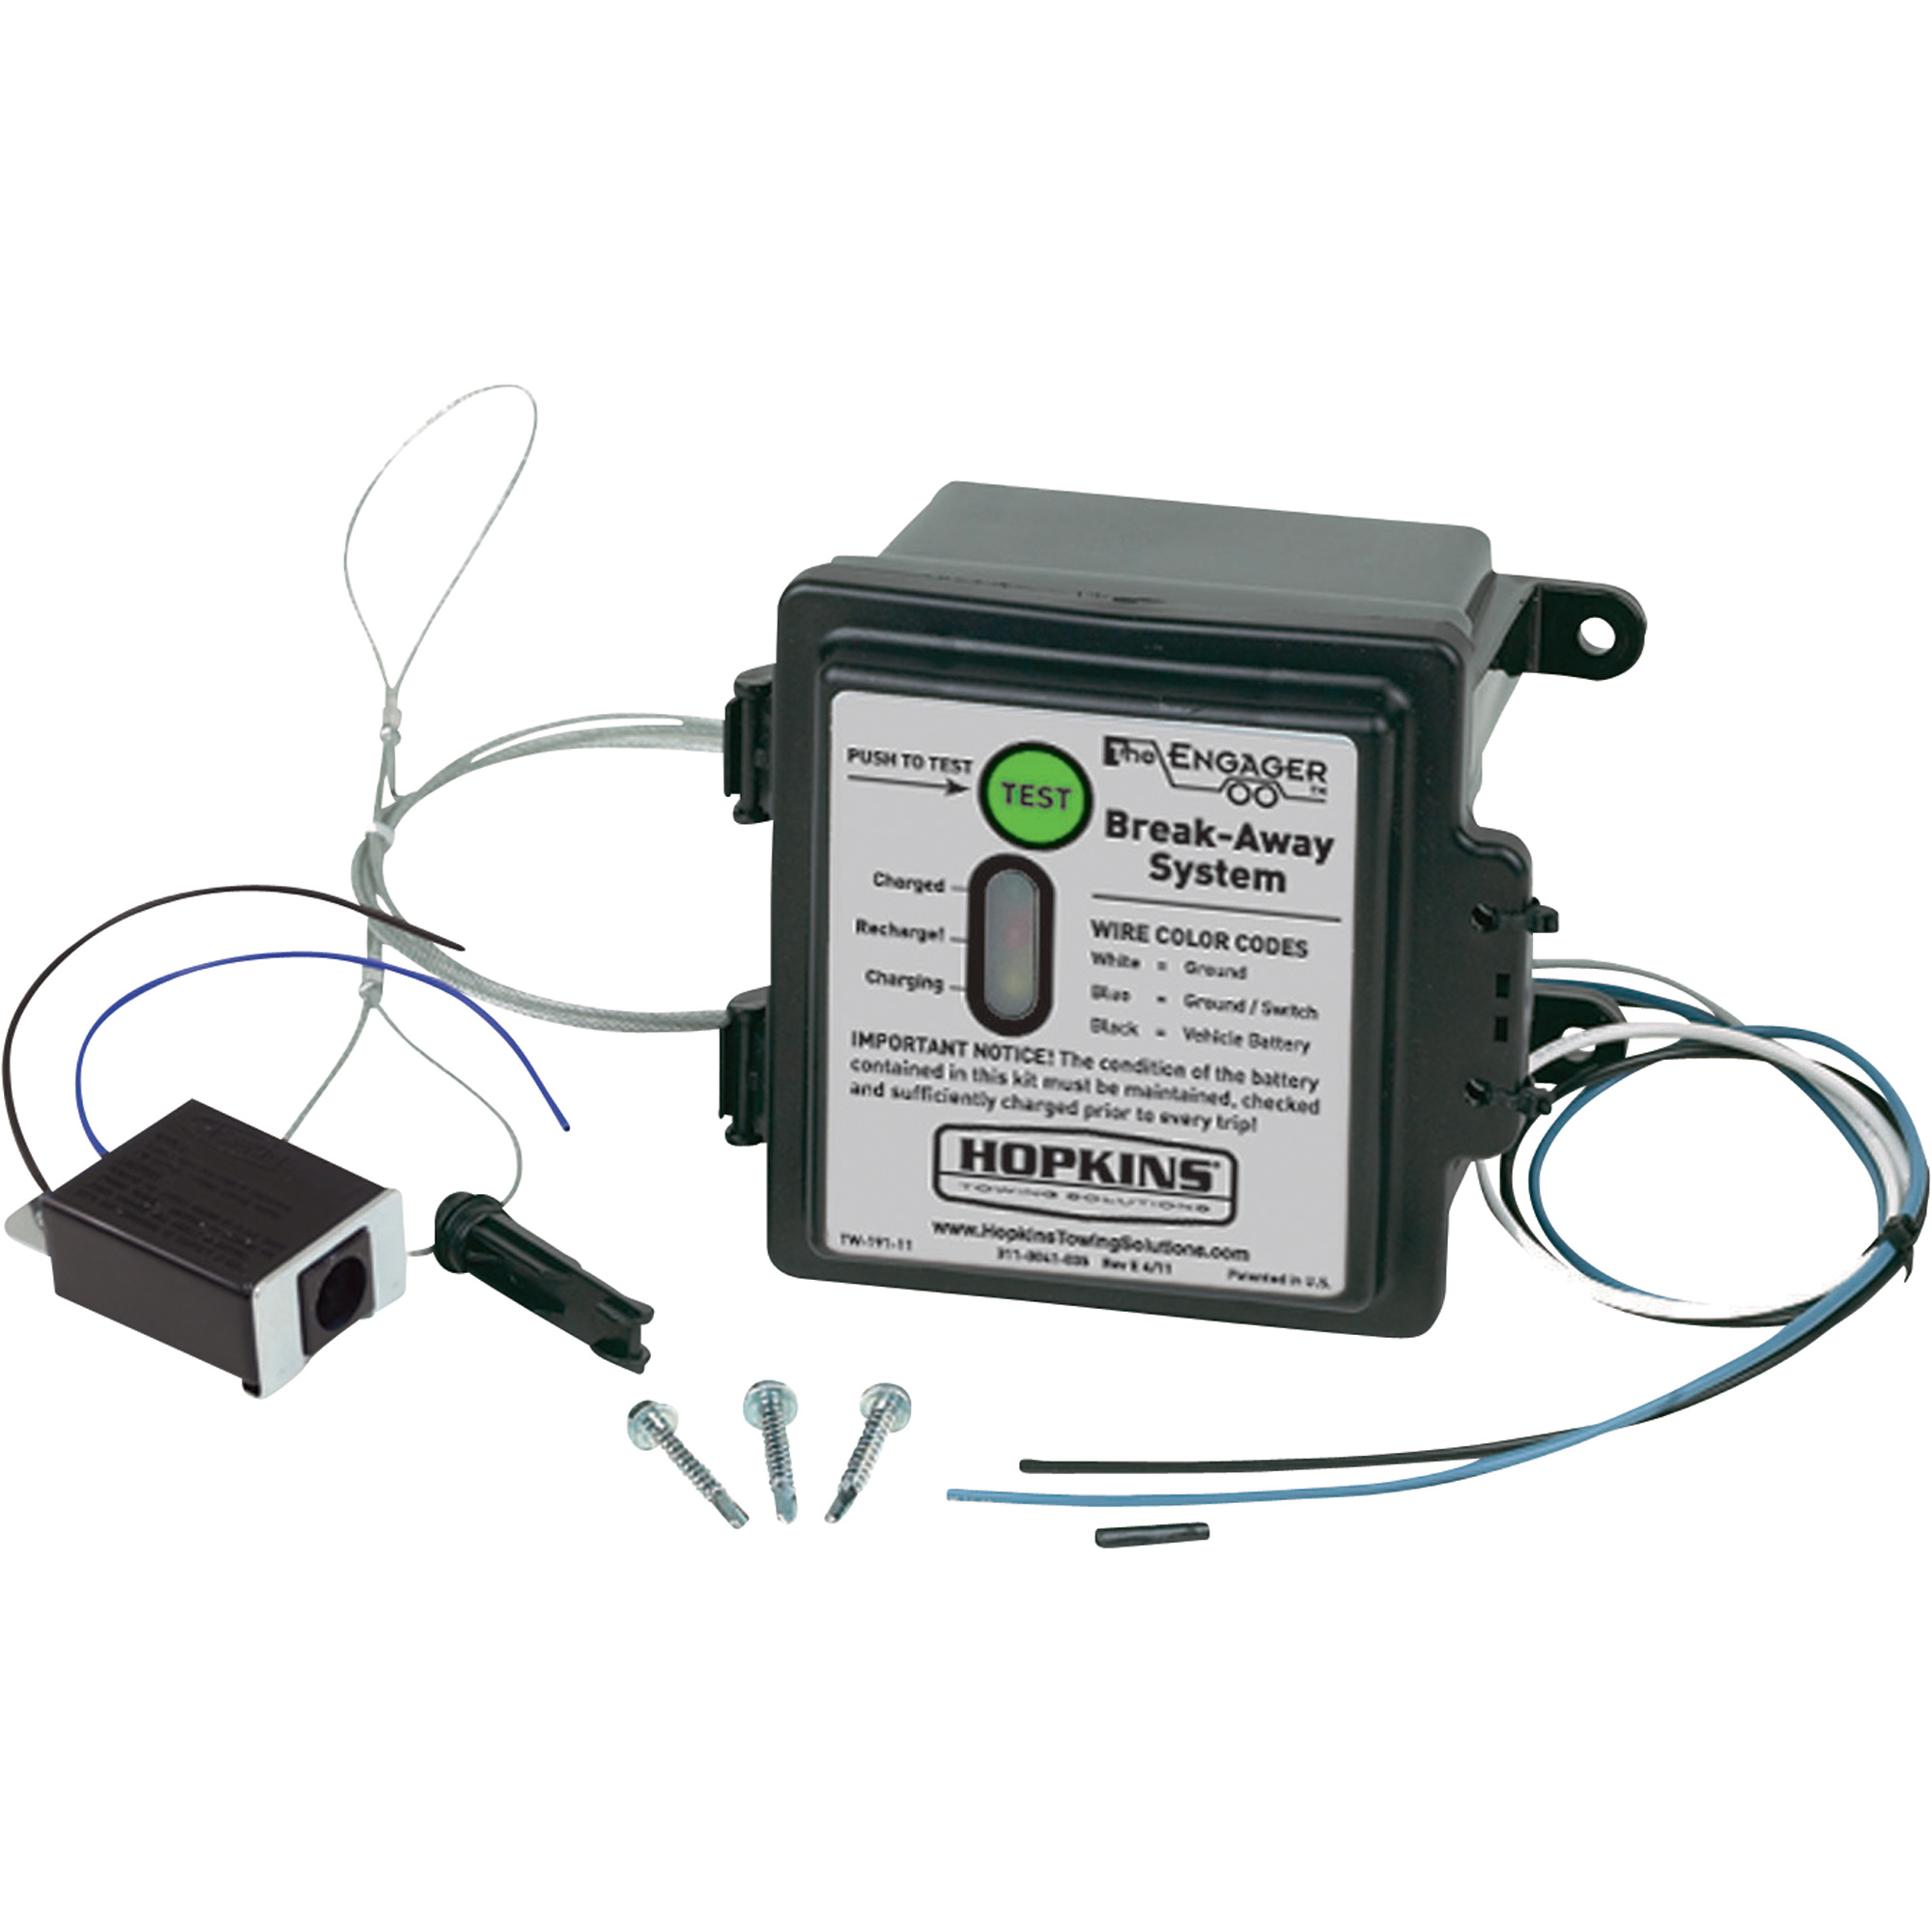 Hopkins Towing Solutions Engager Breakaway Kit With Led Test Light - Wiring Diagram For Trailer Breakaway Switch